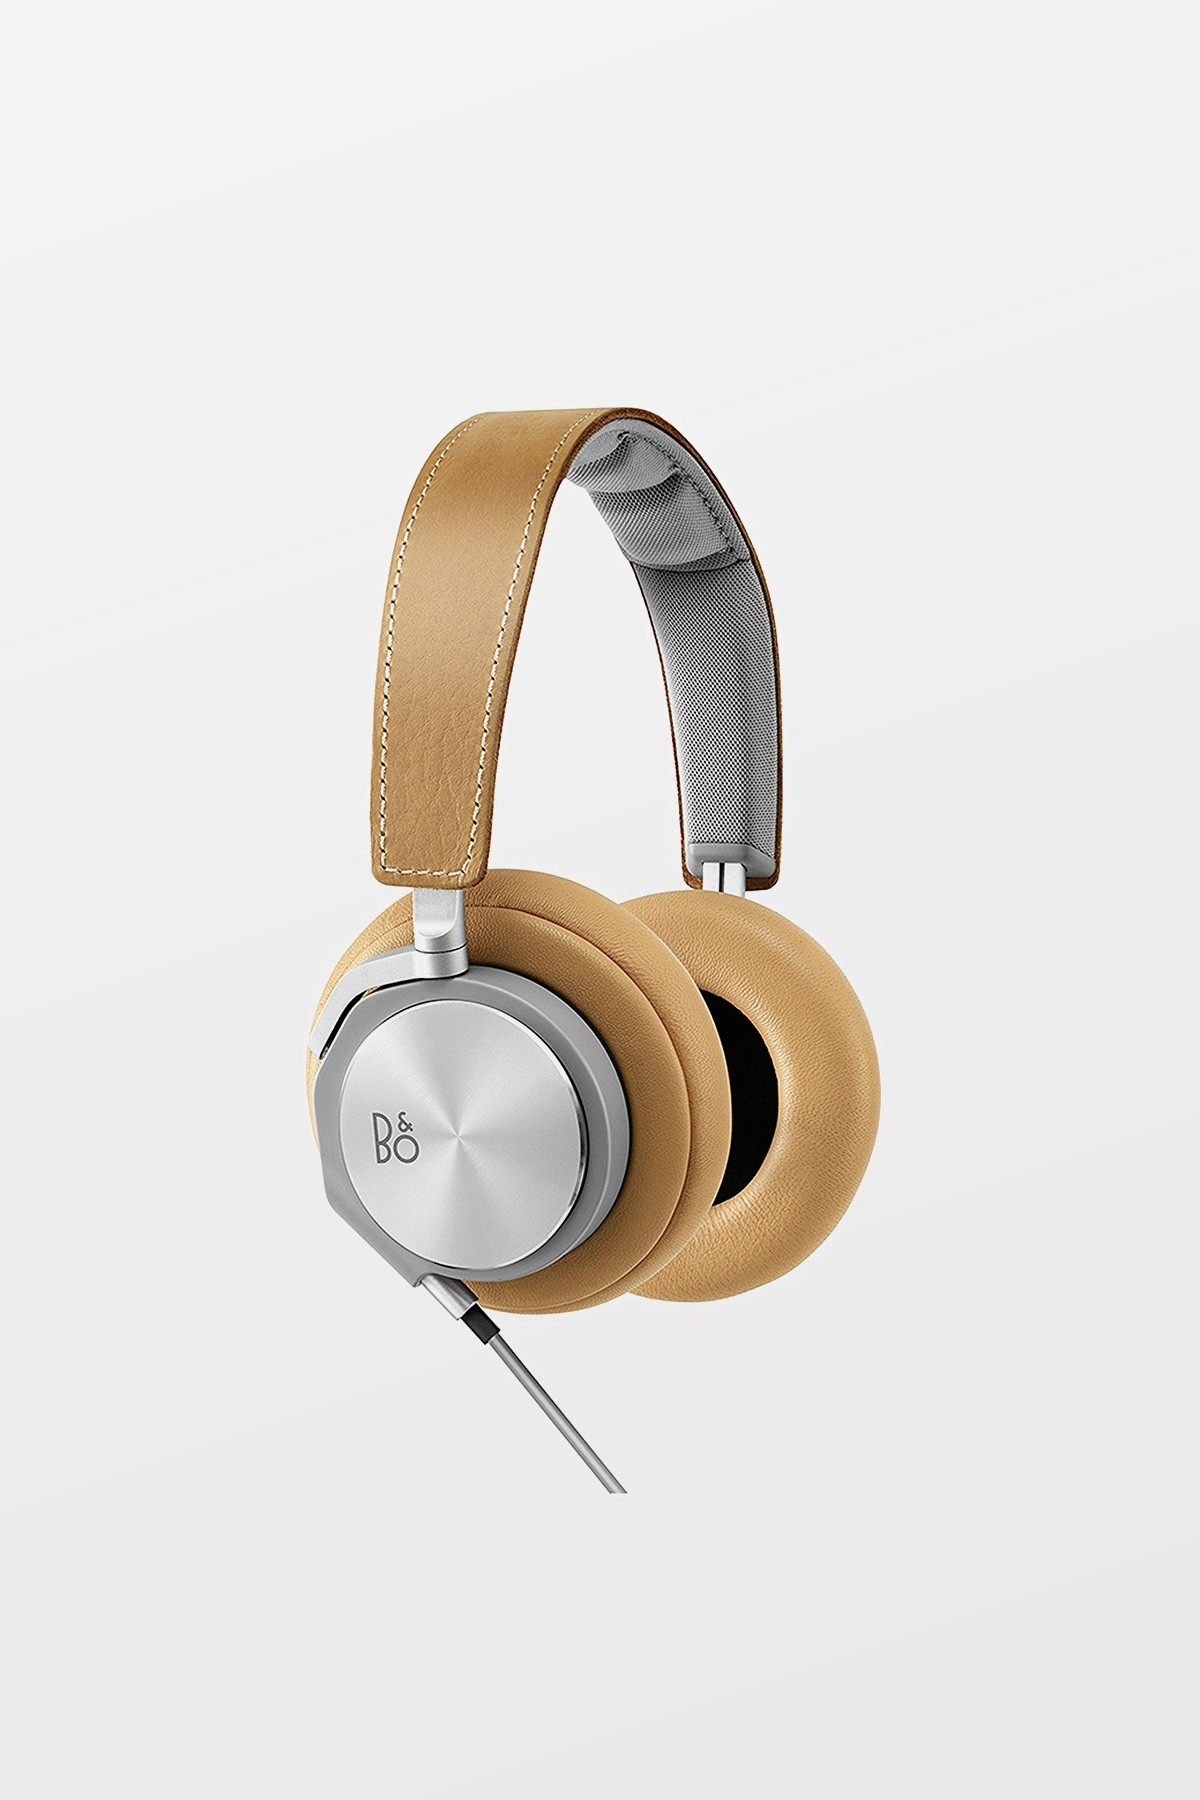 B&O BeoPlay H6 – Natural Leather